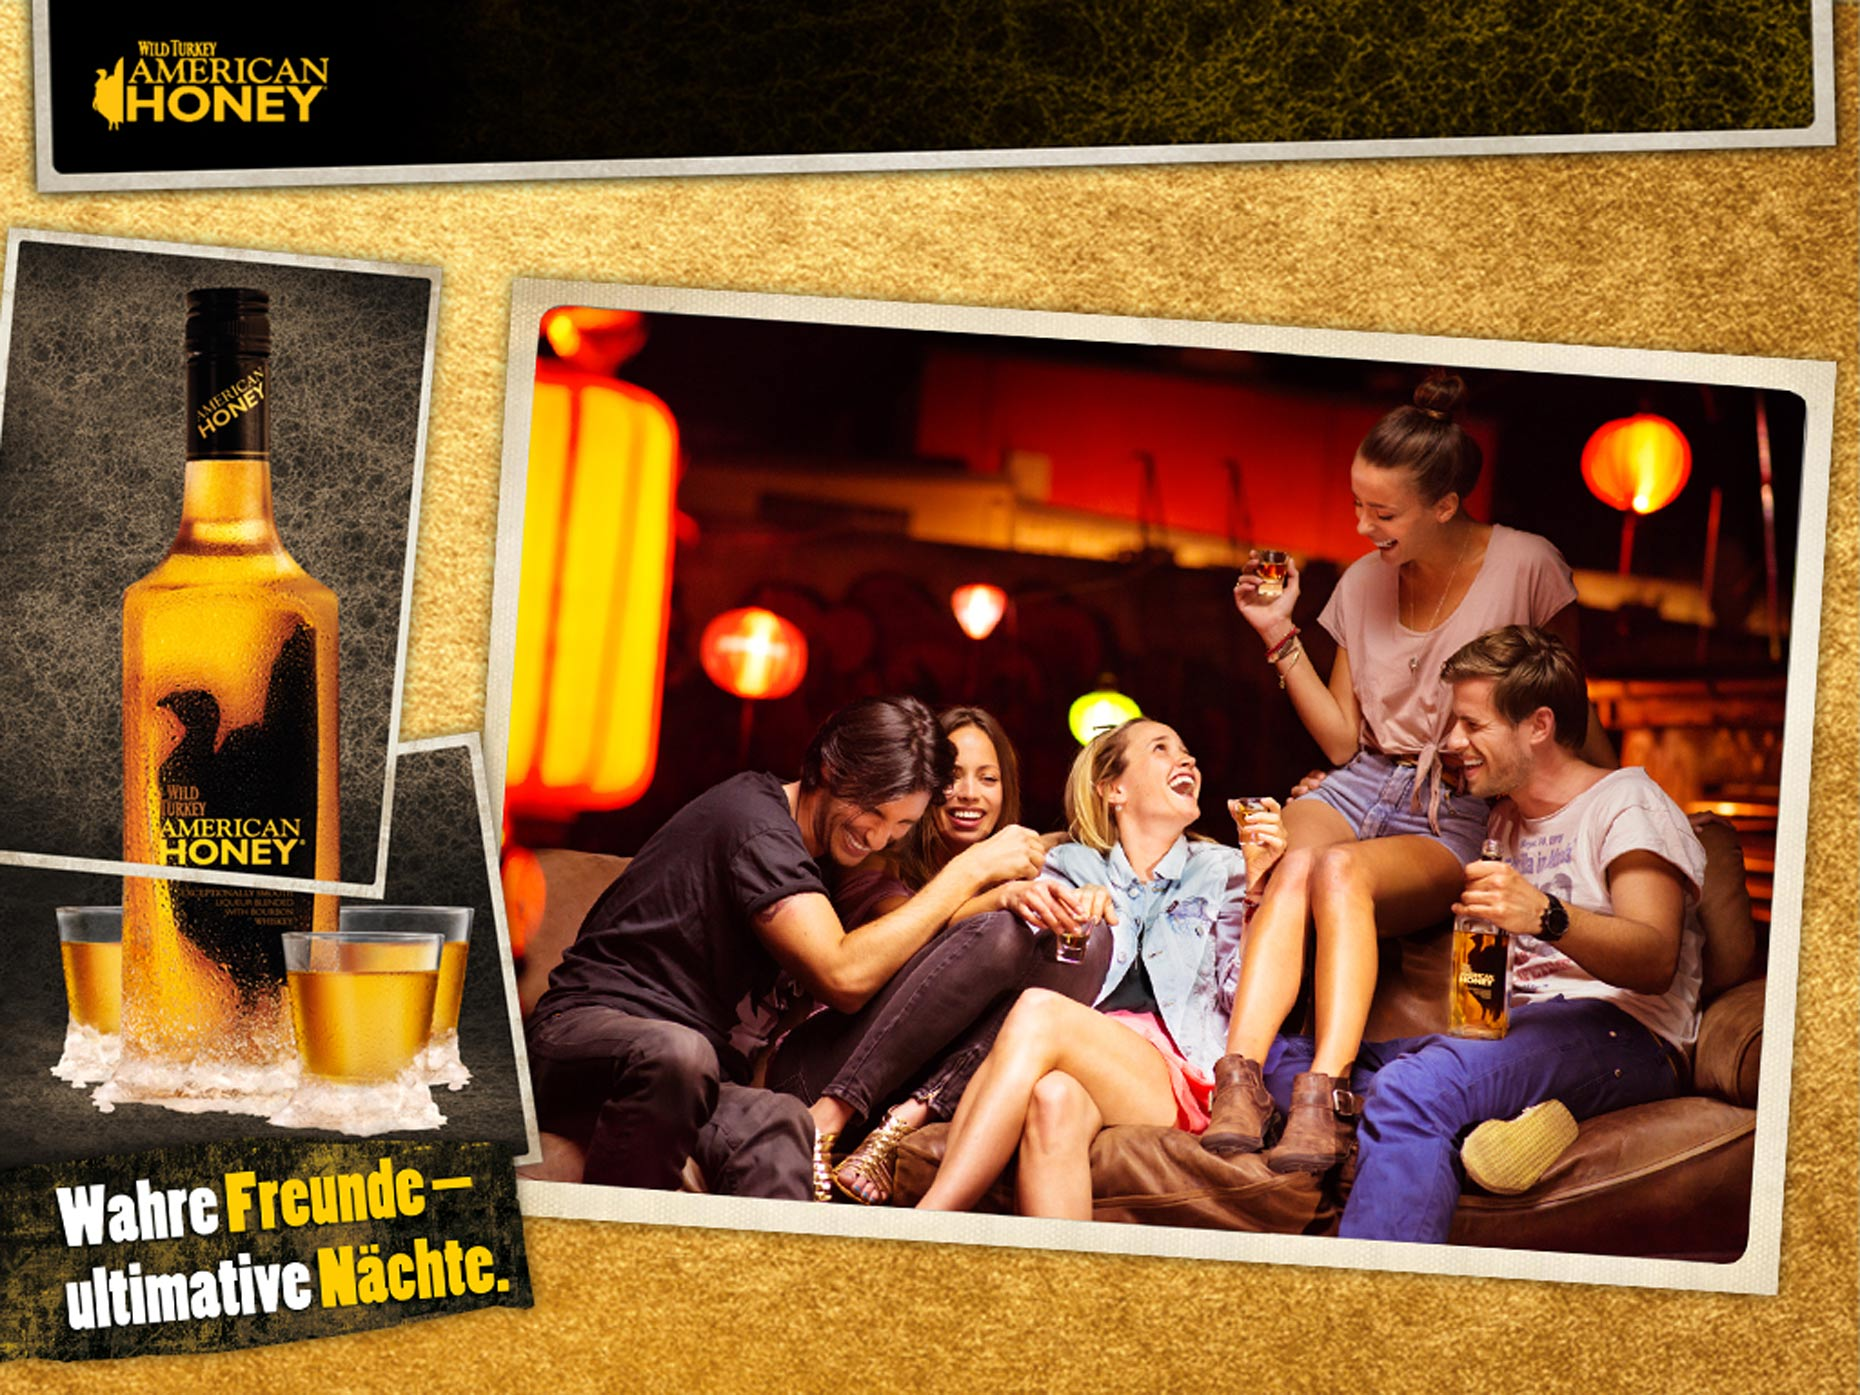 web_Campari_American_Honey_0001_2.jpg